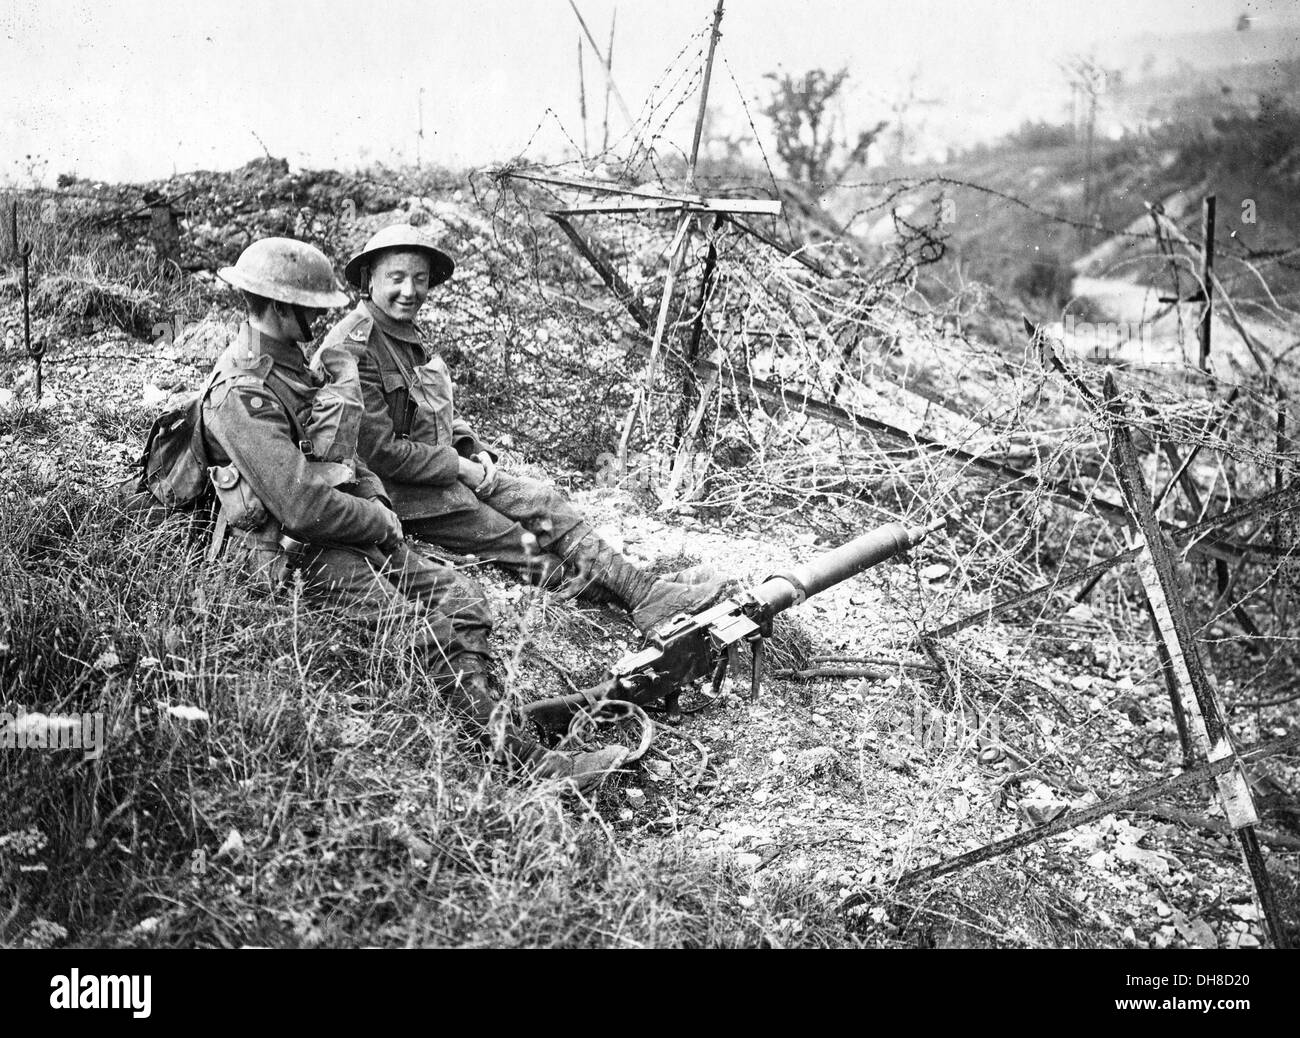 the invention of the barbed wire Why was the invention of barbed wire in 1874 so important to farmers - 1042459.